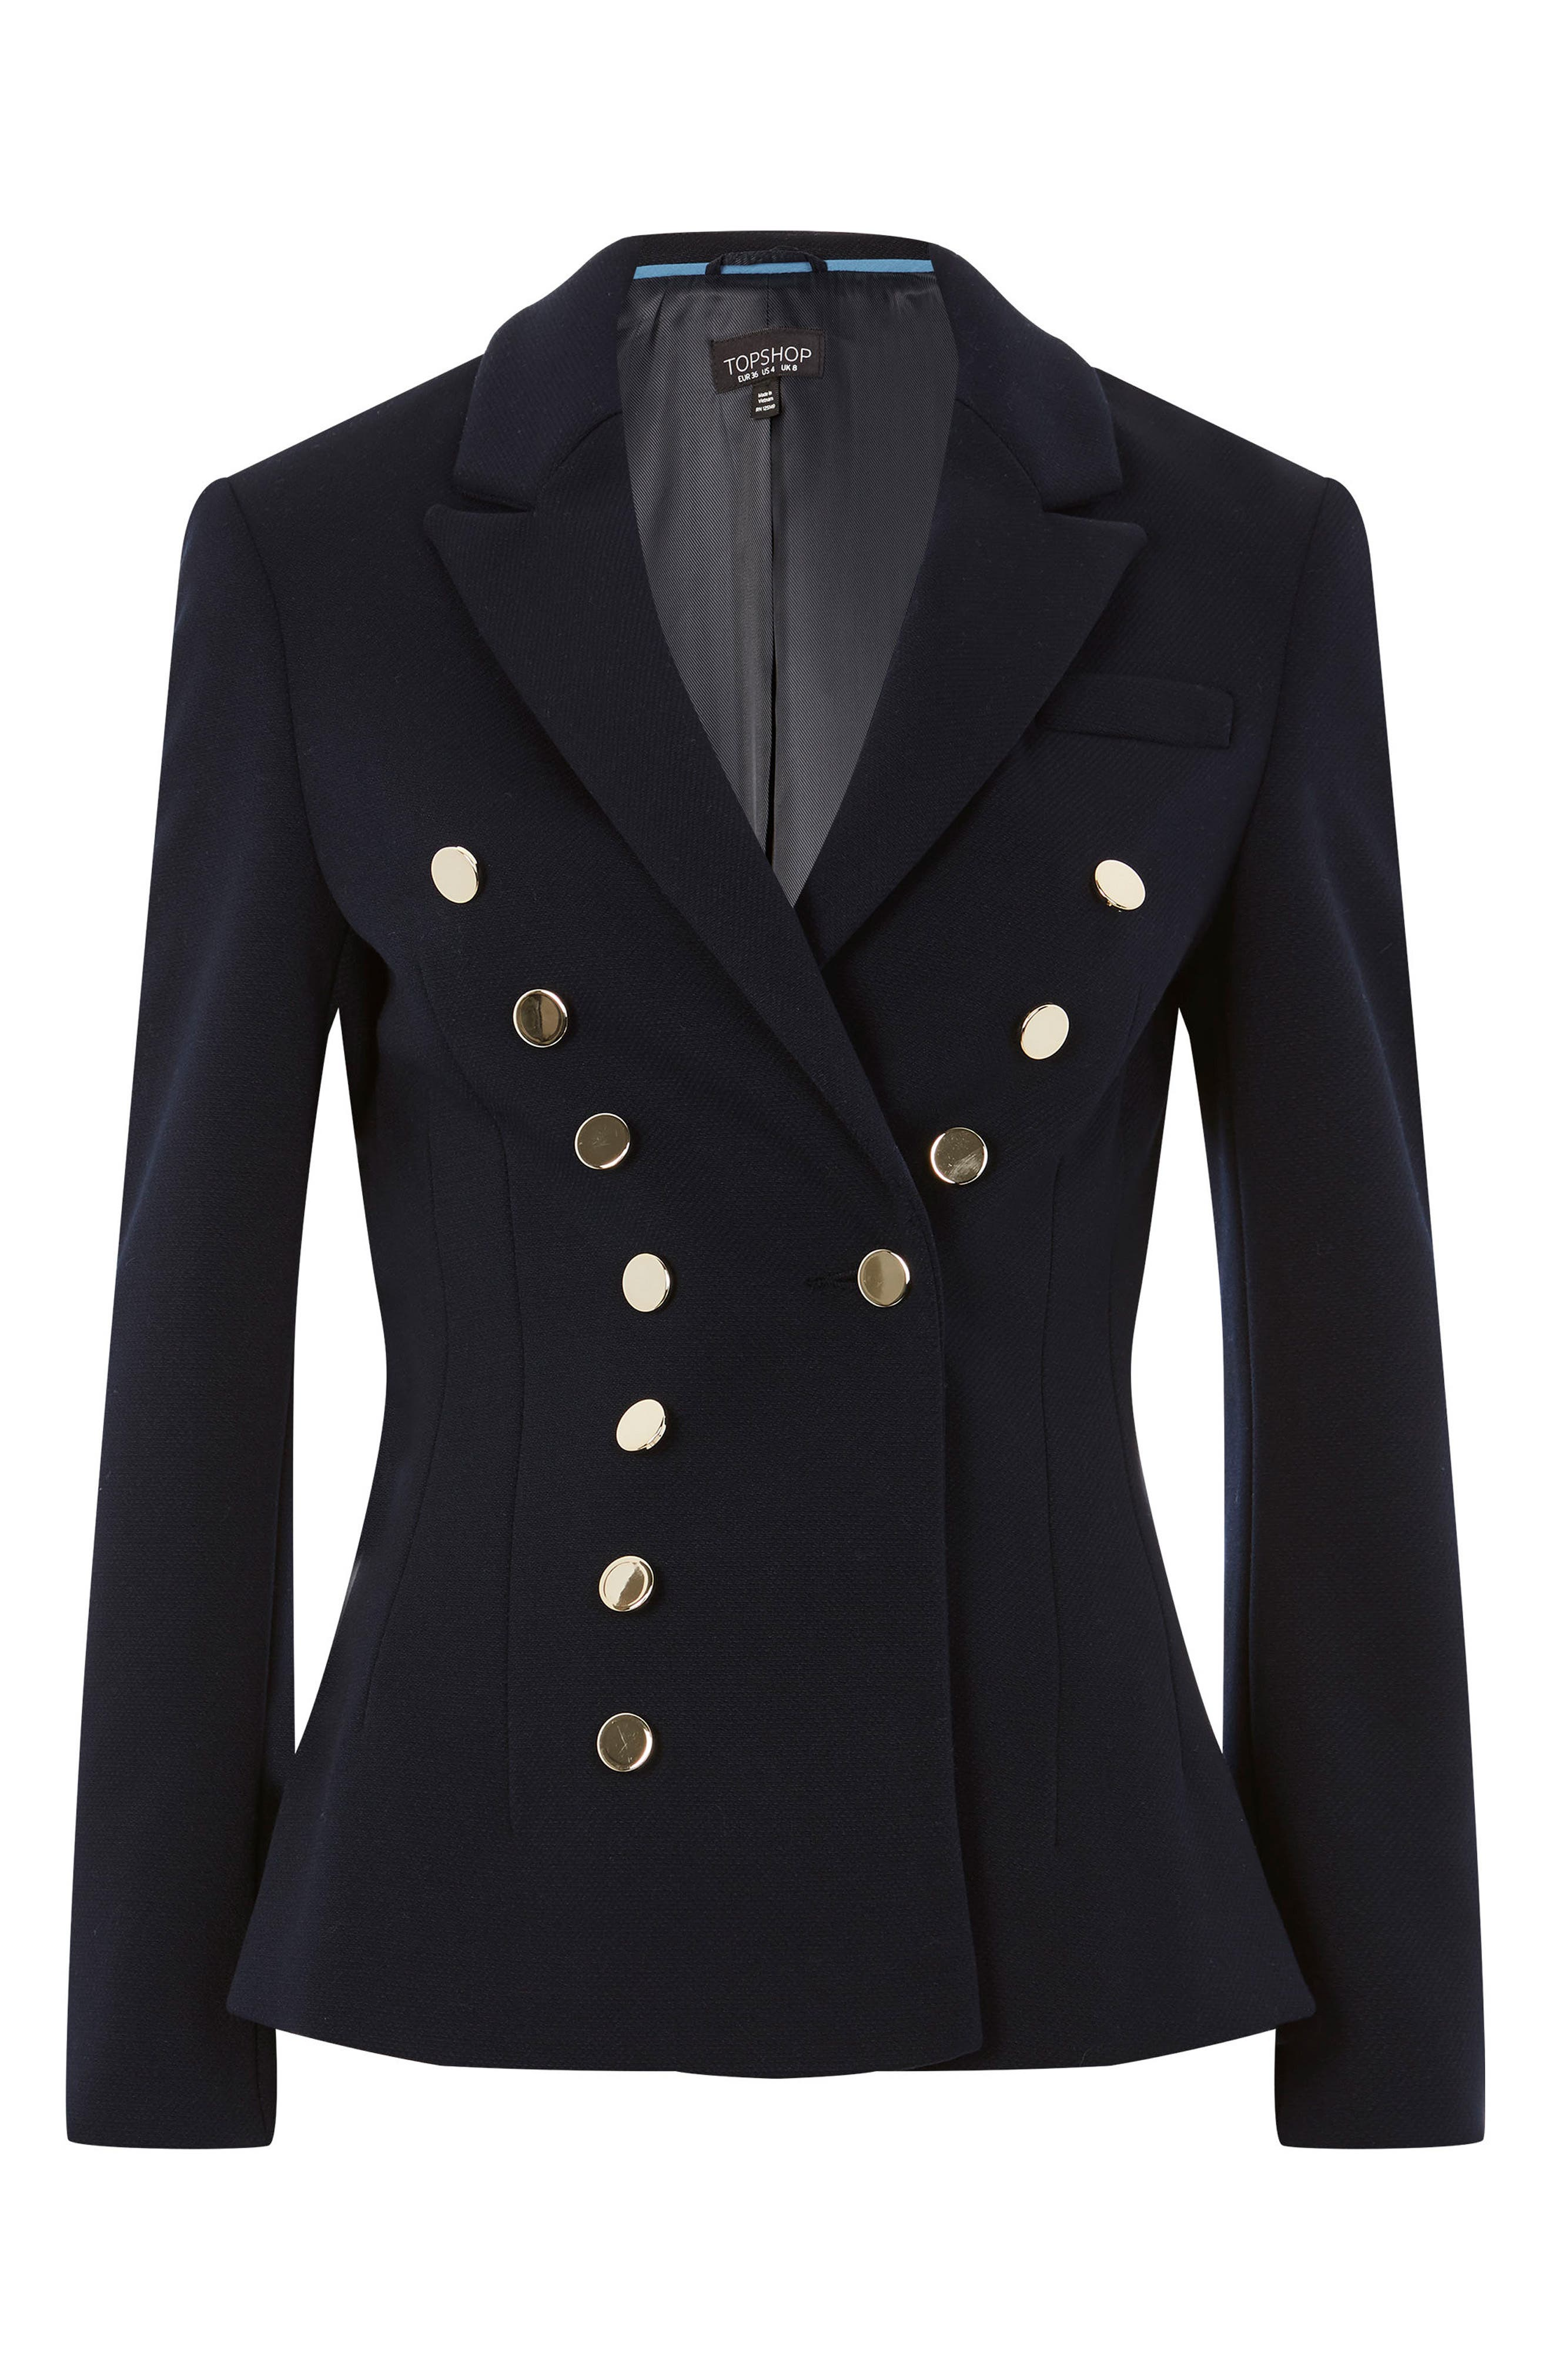 Golden Button Double Breasted Jacket,                             Alternate thumbnail 4, color,                             Navy Blue